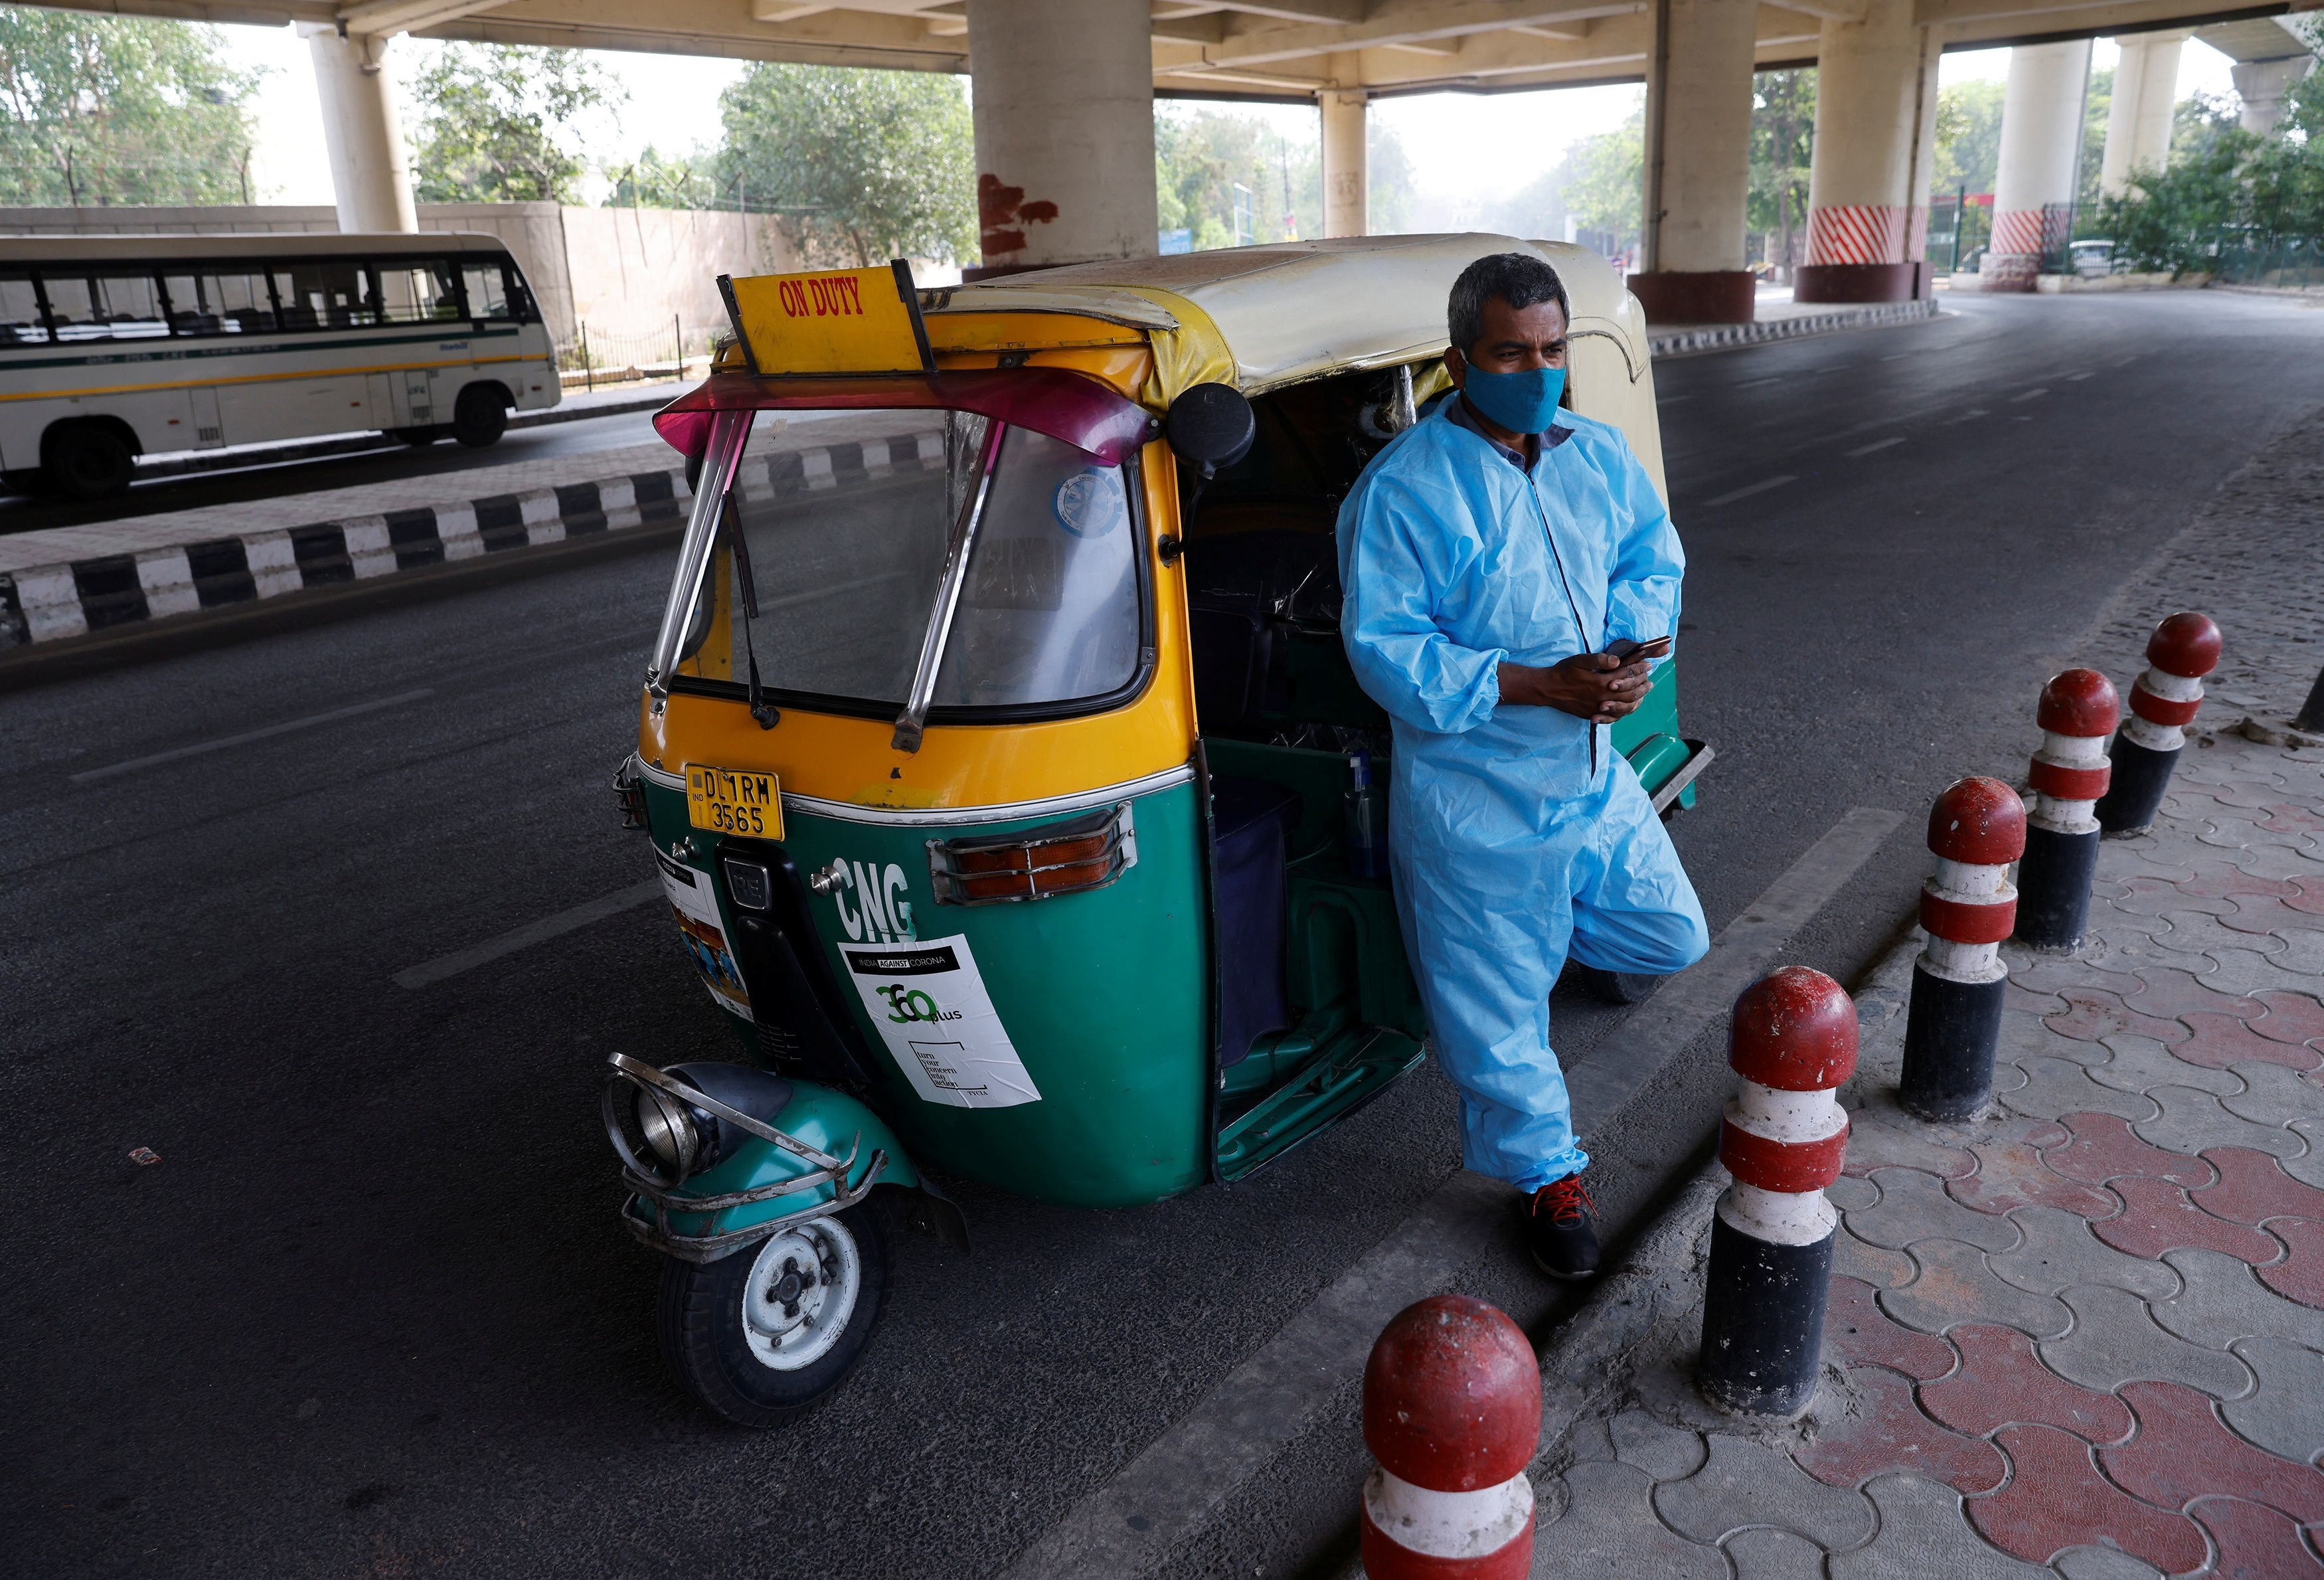 Raj Kumar, 42, a driver of an auto rickshaw ambulance which is prepared to transfer people suffering from the coronavirus disease (COVID-19) and their relatives for free, waits for passengers in New Delhi, India May 6, 2021. REUTERS/Adnan Abidi - RC23AN94AM13